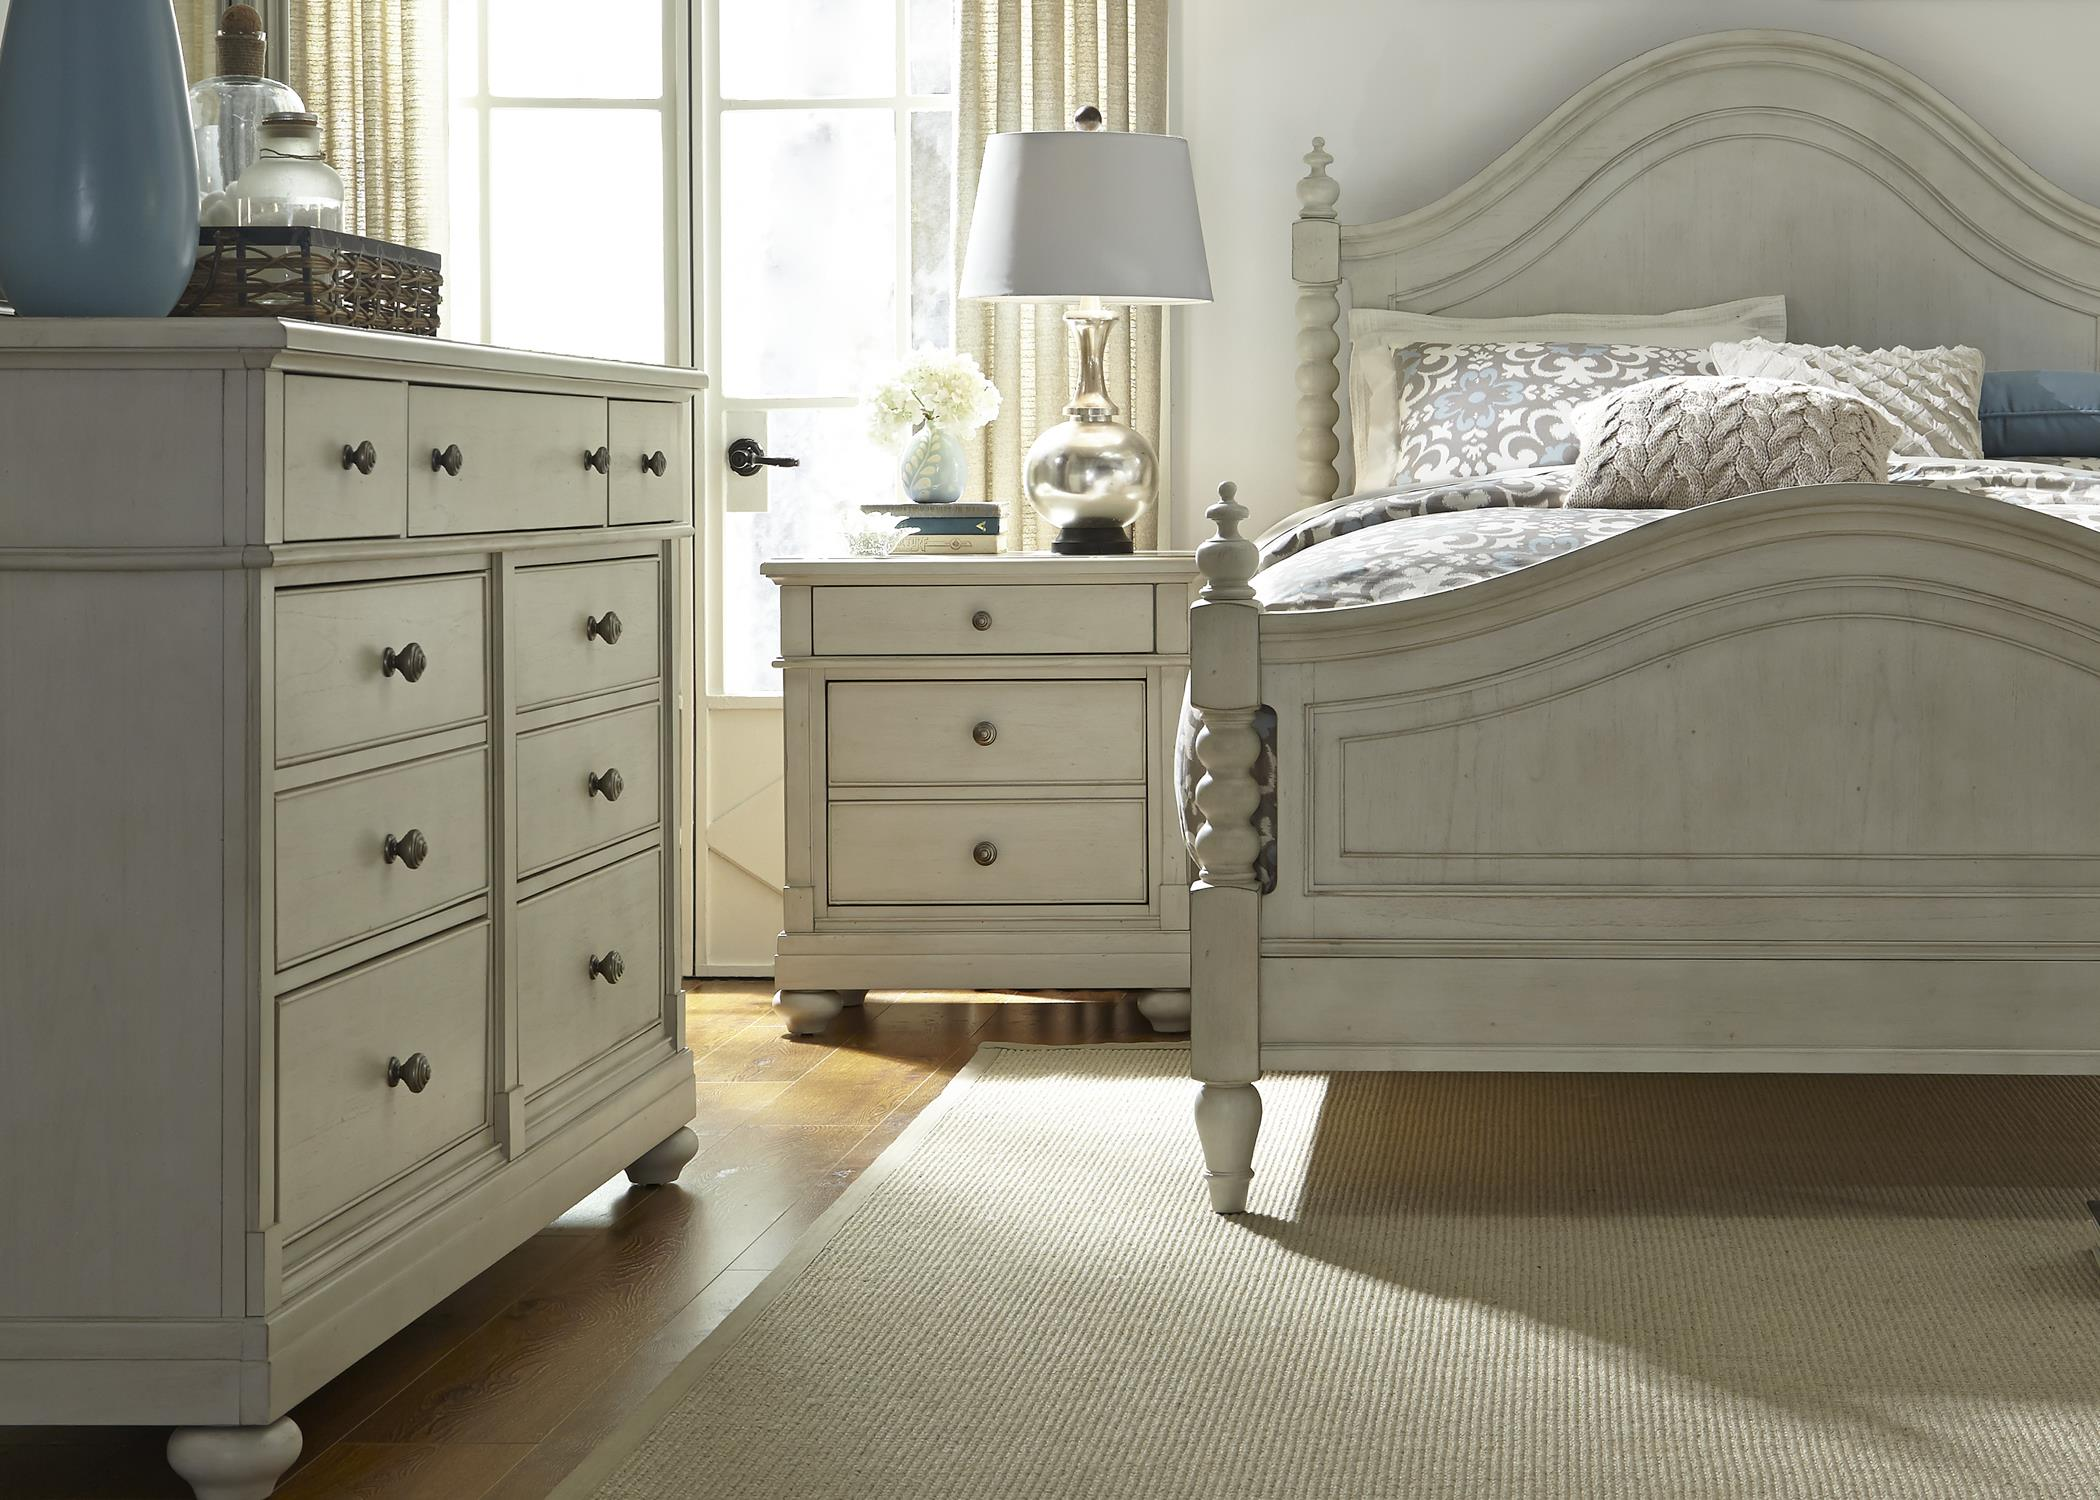 Liberty Furniture Harbor View King Bedroom Group - Item Number: 731-BR-KPSDMN